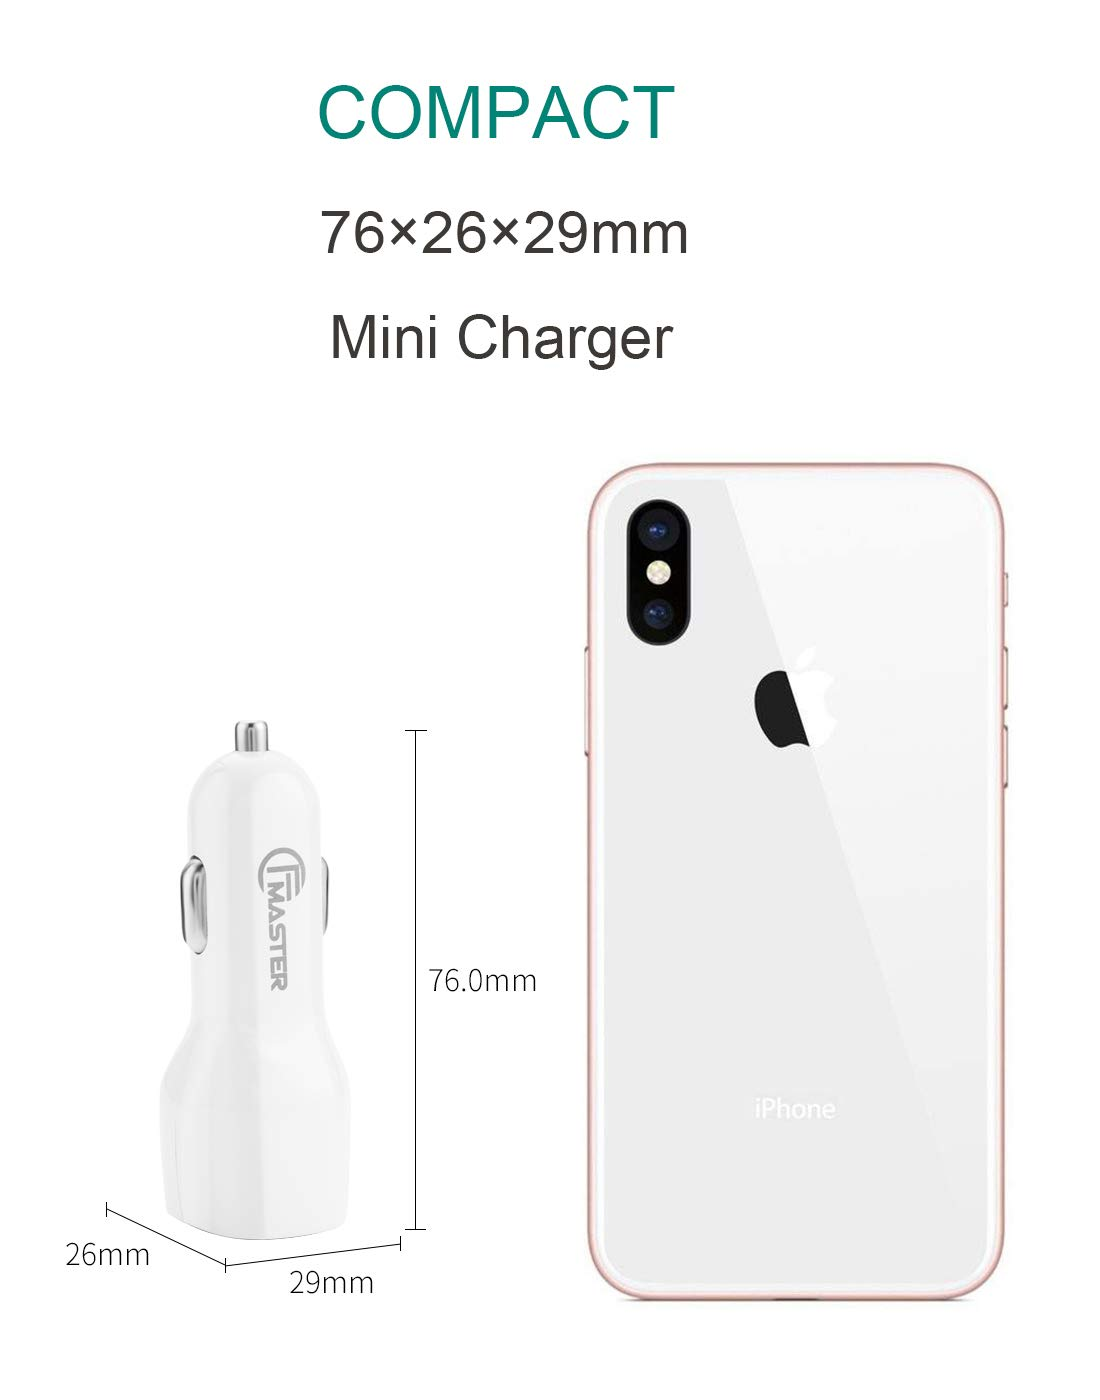 2.1A 10.5W 12V Output 2 Port with Blue LED Indicator for iPhone X Xs Max XR Dual USB Car Charger Samsung Galaxy Note 9 8 7 and More Smart Phone Master iPad Pro Air Mini